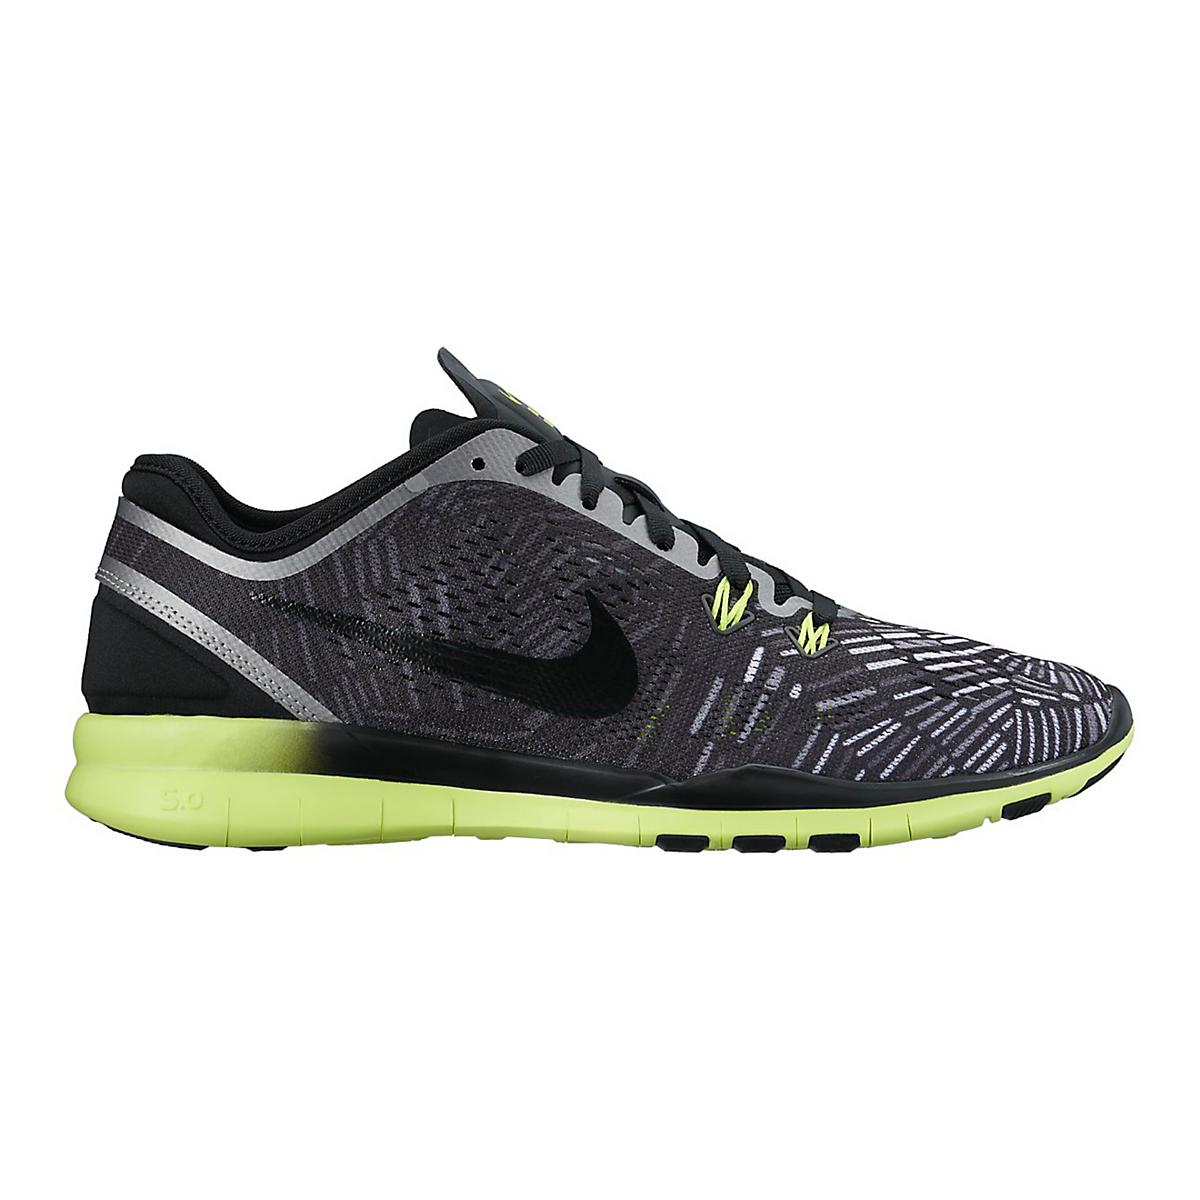 03063d7288518 ... Womens Nike Free 5.0 TR Fit 5 Print Cross Training Shoe at Road Runner  Sports ...